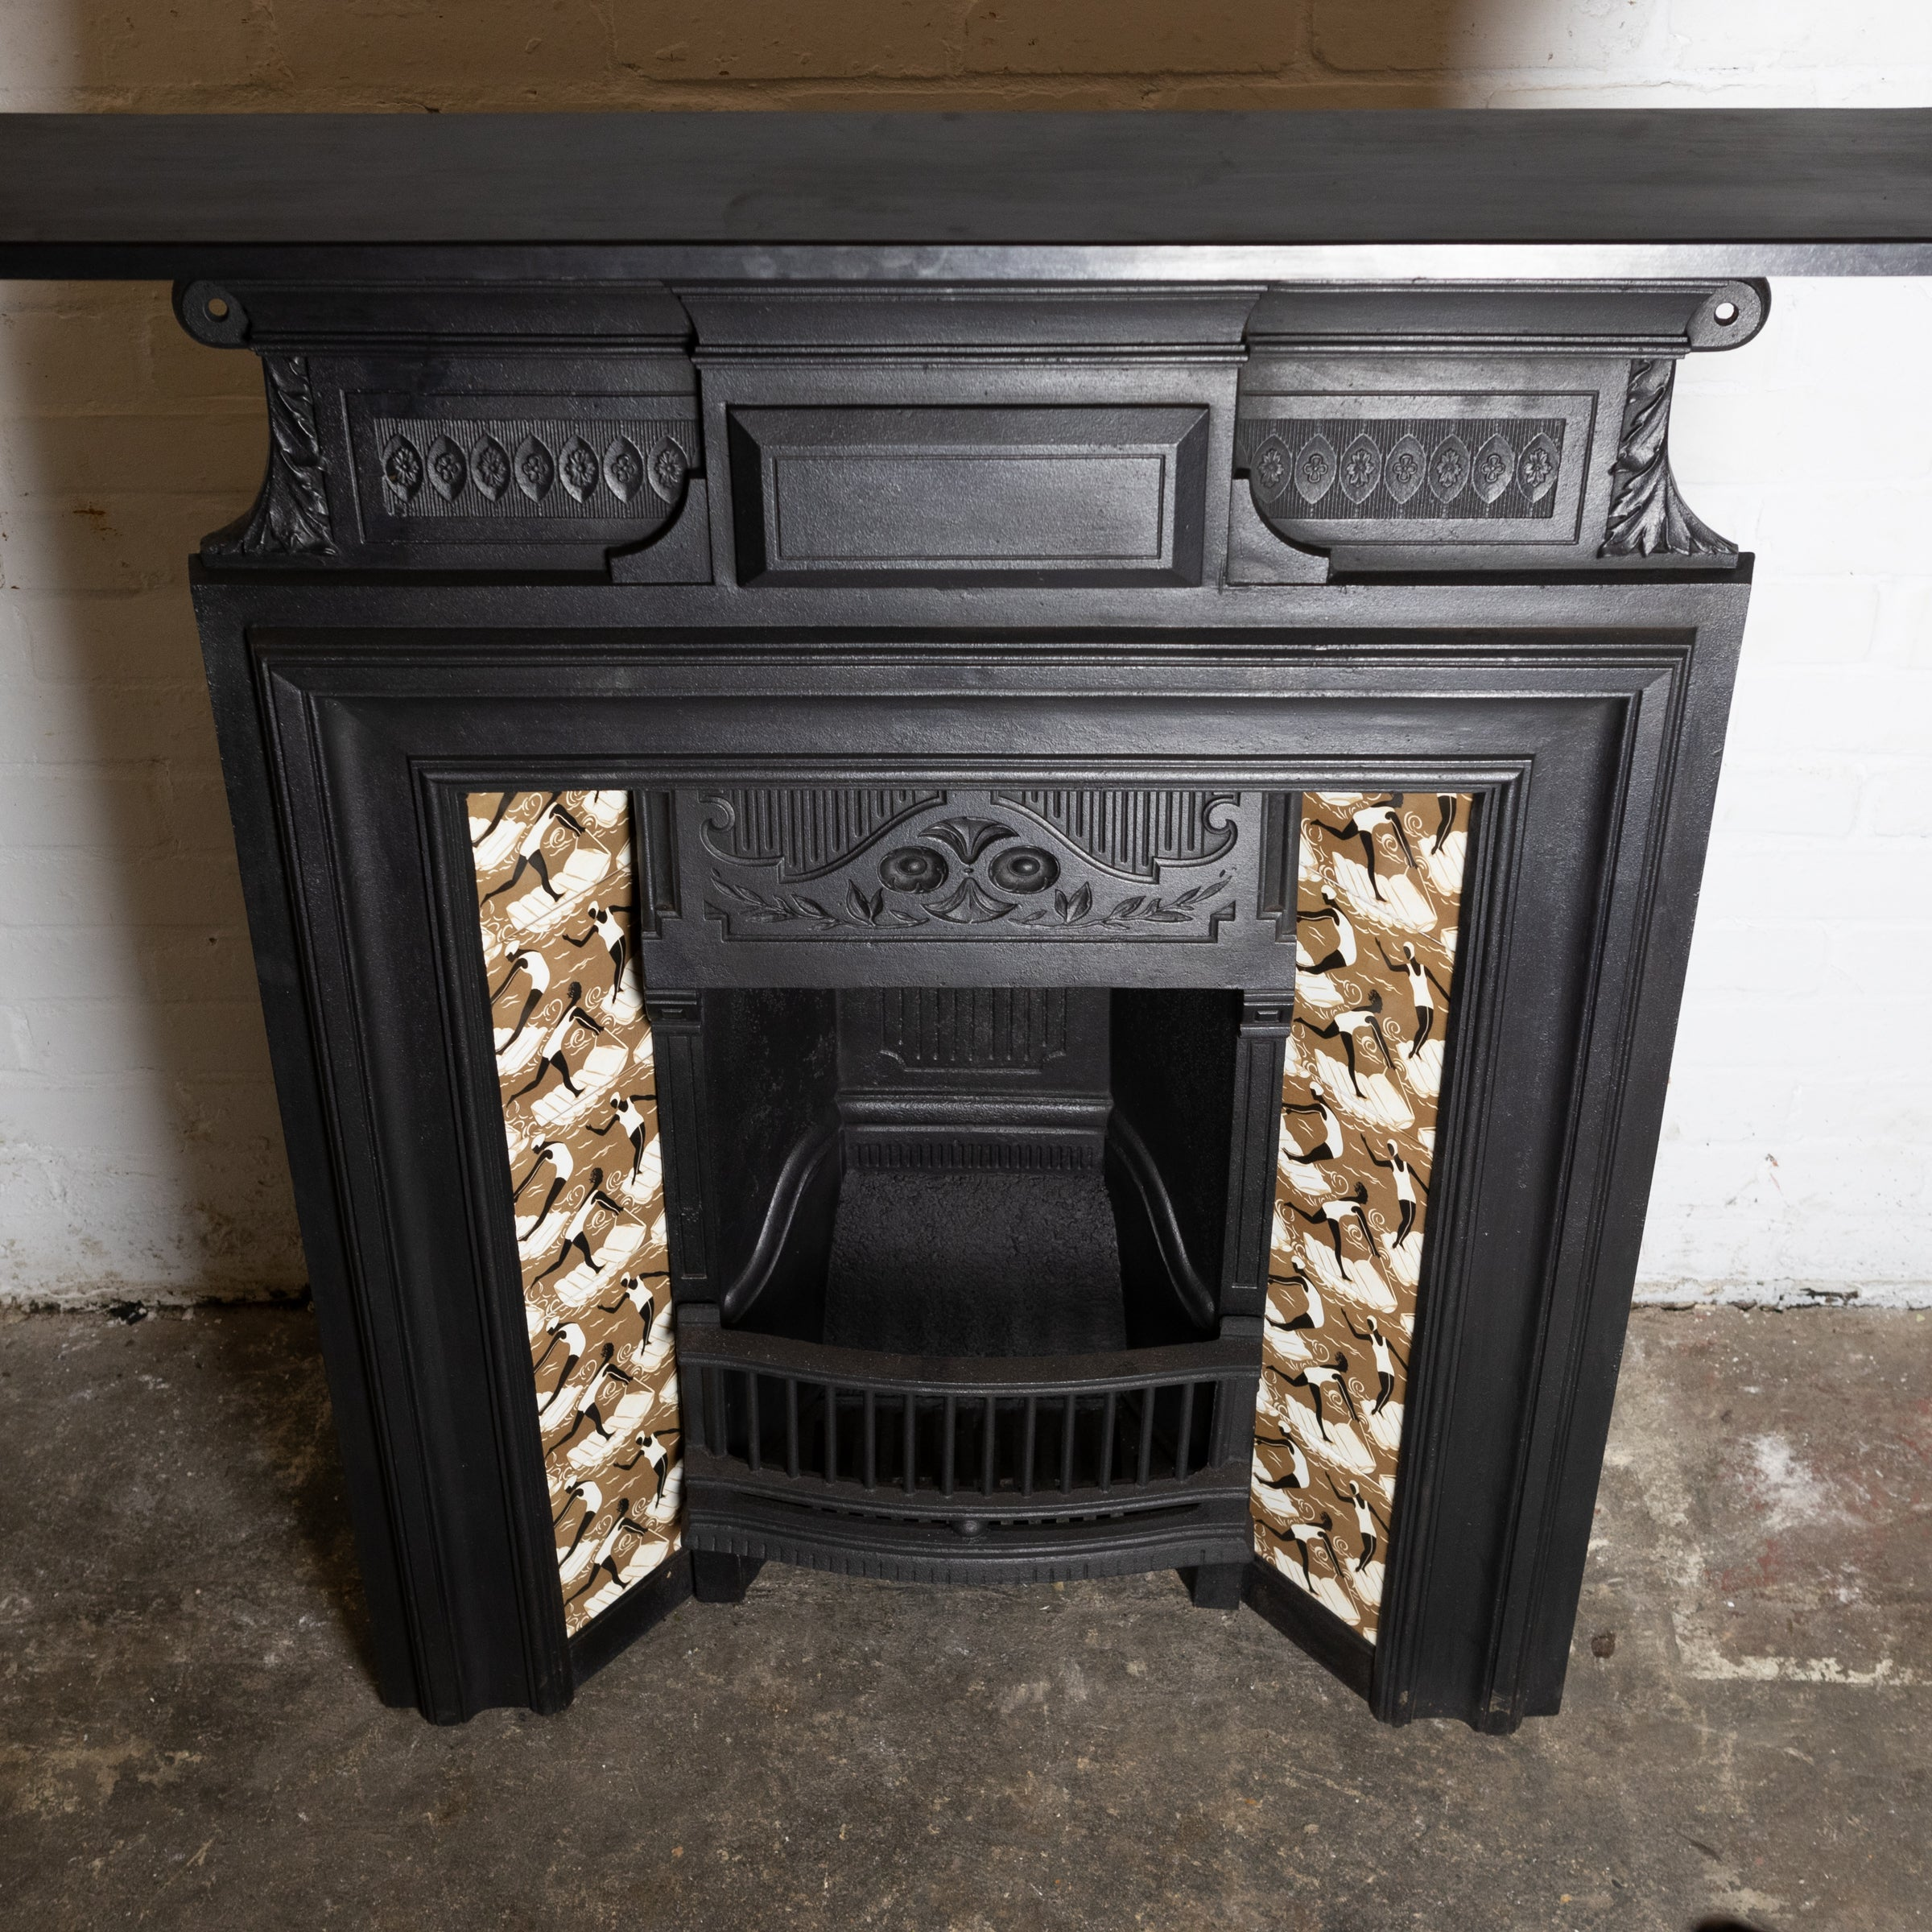 Antique Cast Iron Combination Fireplace with Swimming Lady Tiles